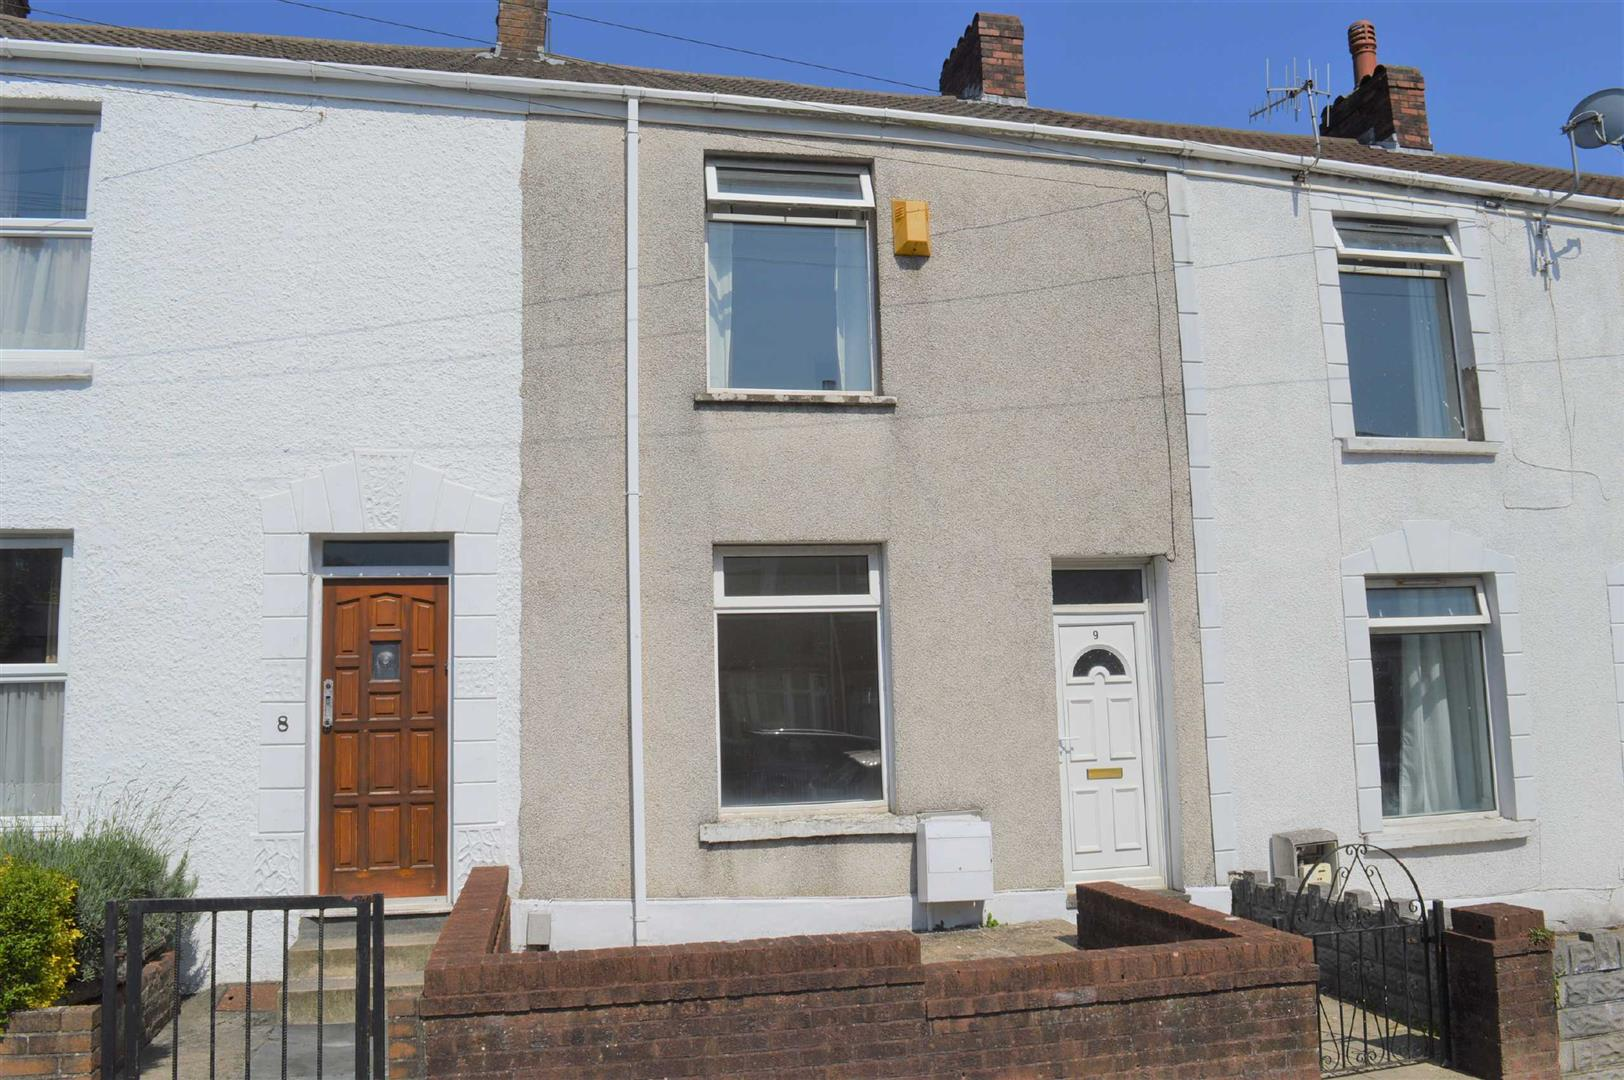 Burman Street, Mount Pleasant, Swansea, SA1 6BW